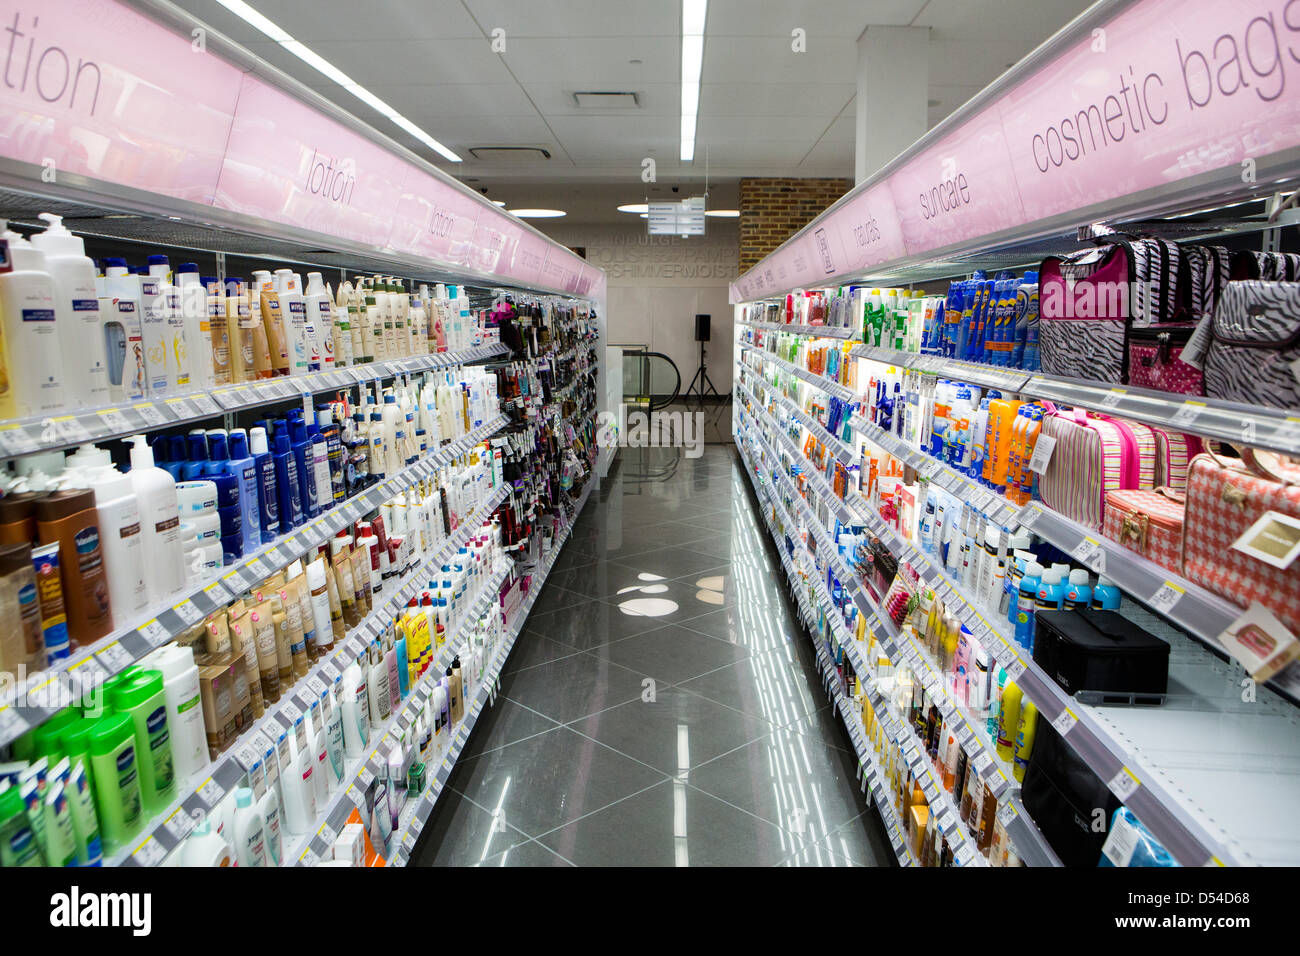 lotion on display at a Walgreens Flagship store in downtown Washington, DC. - Stock Image